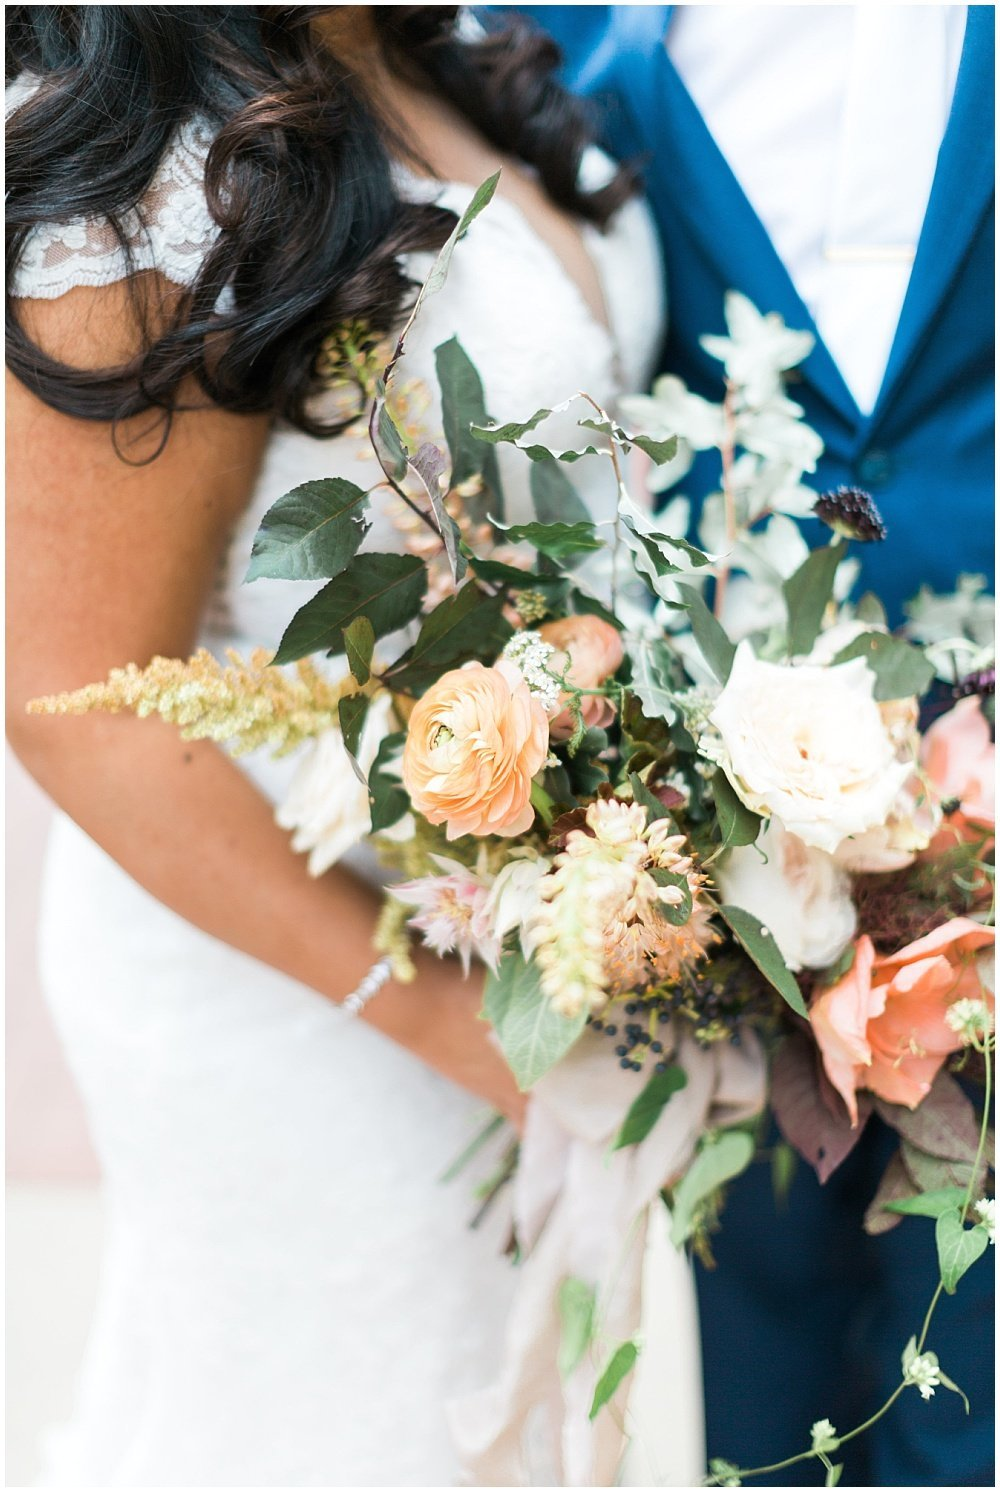 Summer-Mexican-Inspired-Gold-And-Floral-Crowne-Plaza-Indianapolis-Downtown-Union-Station-Wedding-Cory-Jackie-Wedding-Photographers-Jessica-Dum-Wedding-Coordination_photo___0021